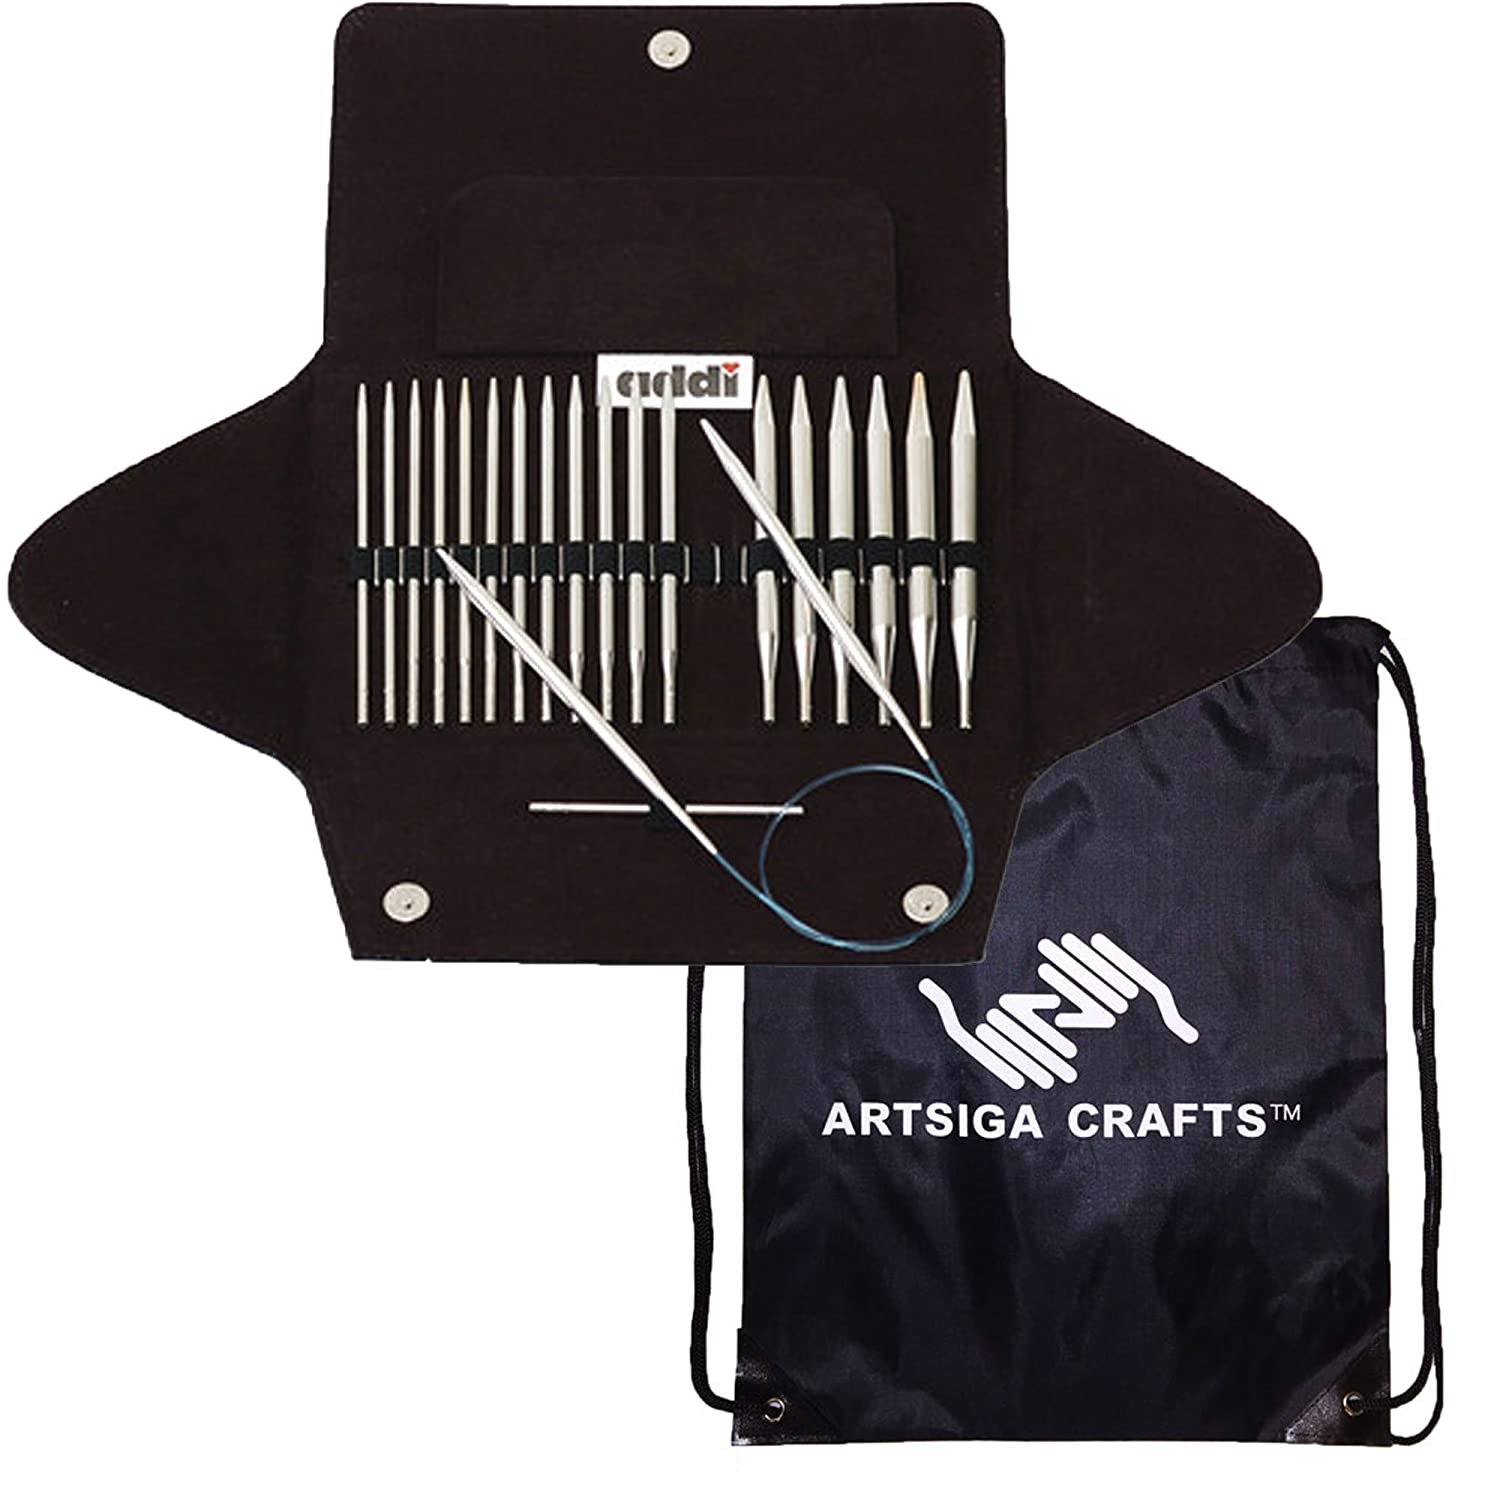 addi Knitting Needles Click Basic Interchangeable Circular System White-Bronze Finish Skacel Exclusive Blue Cords Bundle with 1 Artsiga Crafts Project Bag